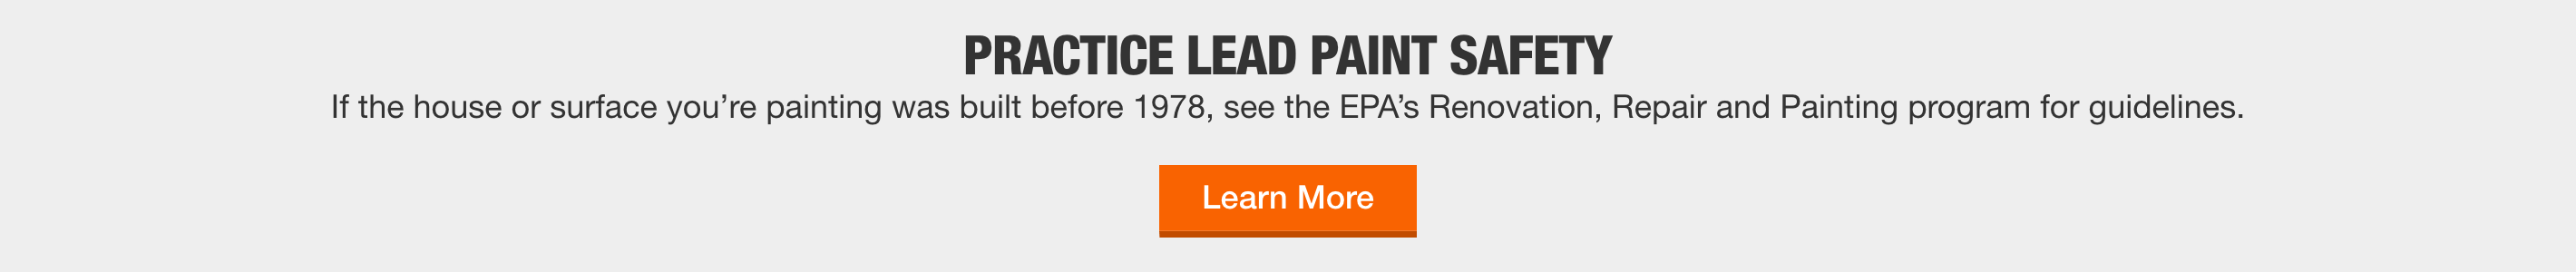 Practice Lead Paint Safety If the house or surface you're painting was built before 1978, see the EPA's Renovation, Repair and Painting program for guidelines.